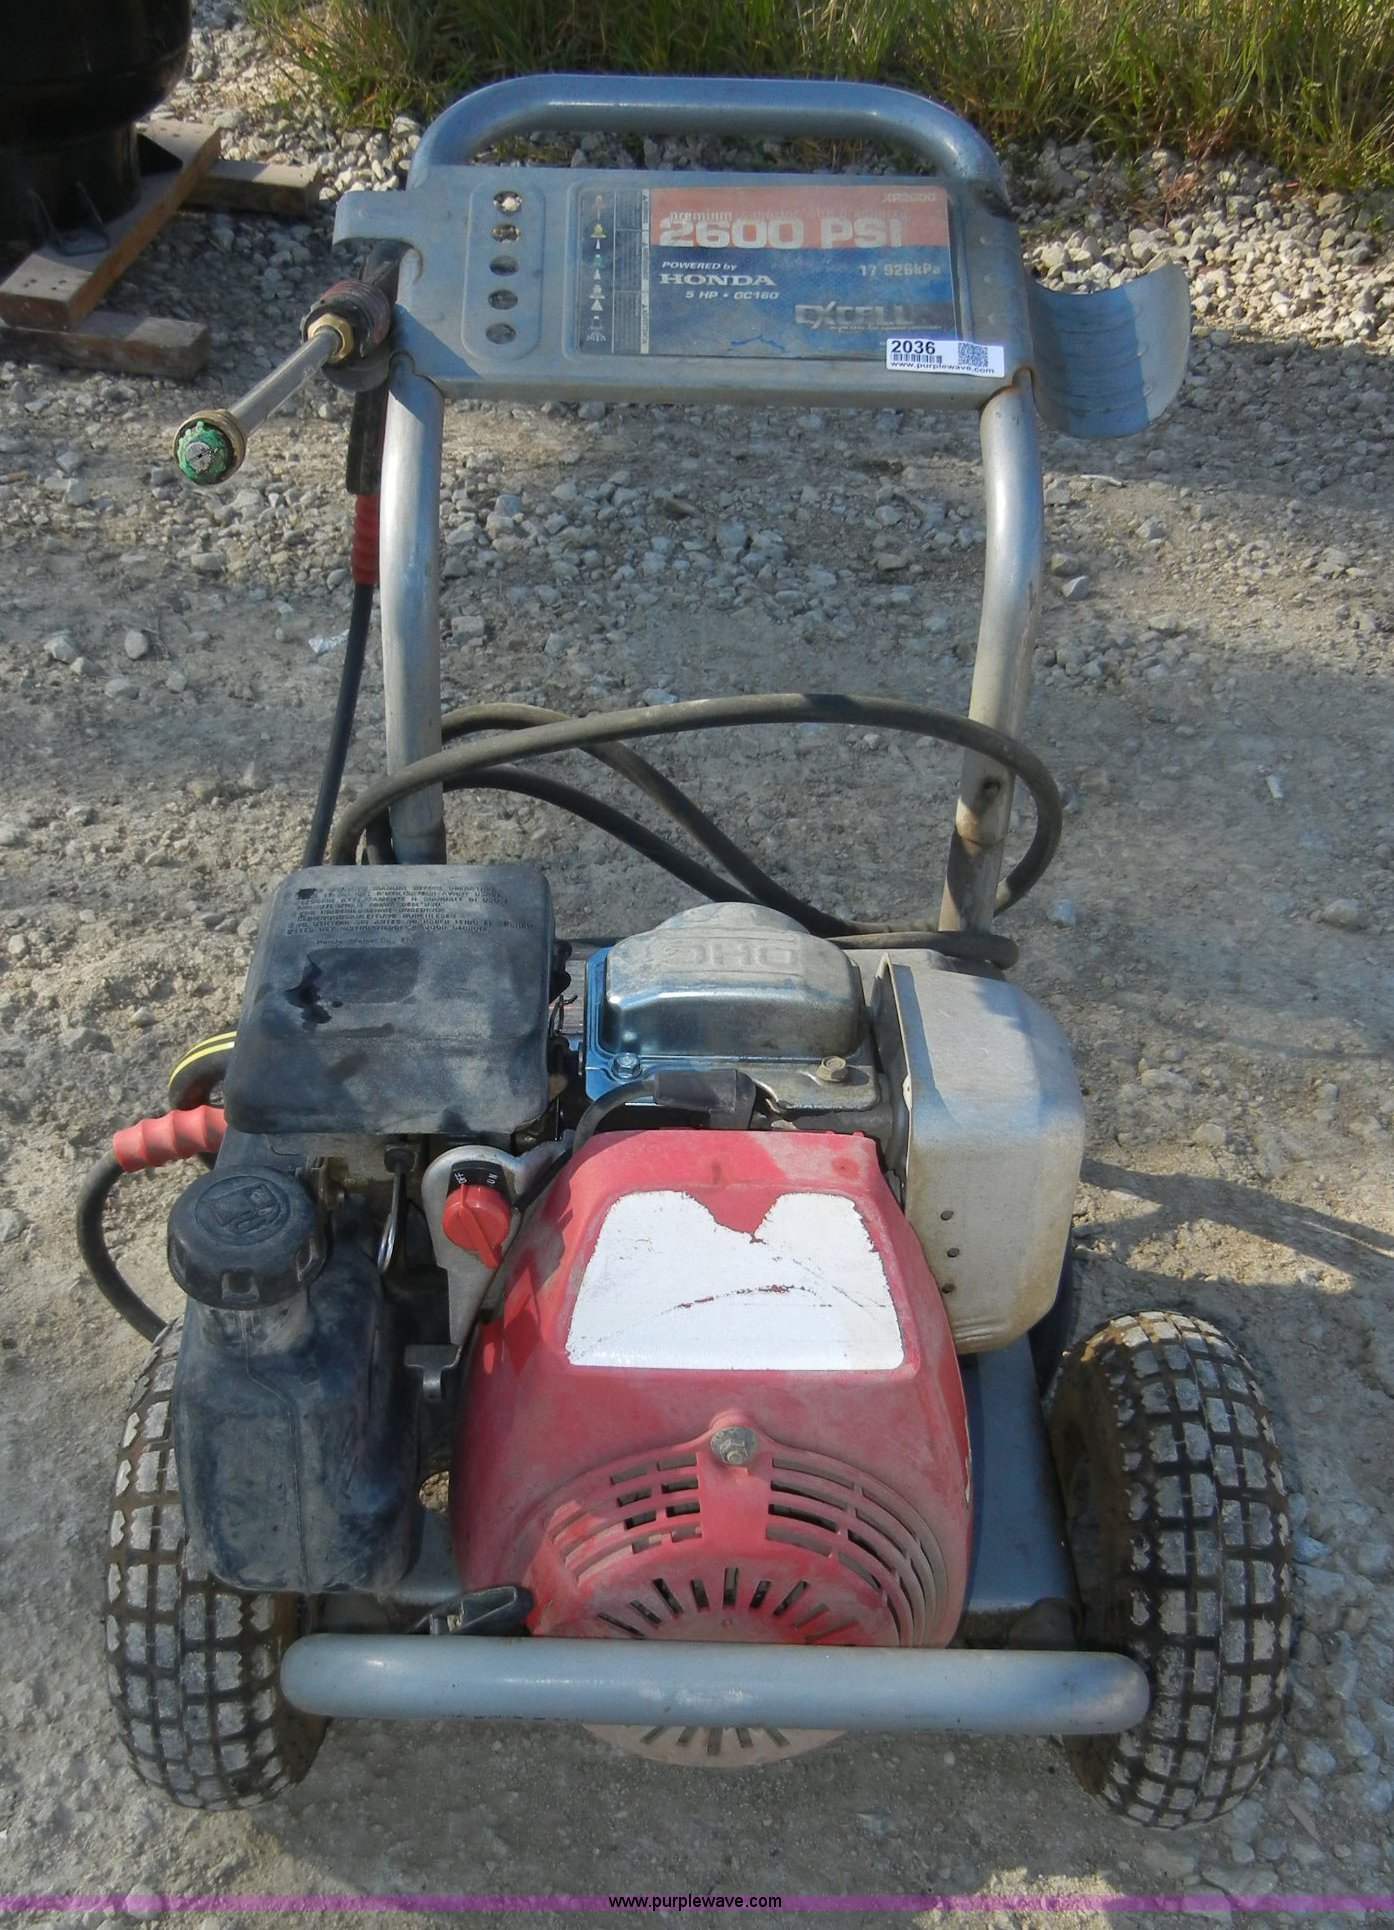 excell xr2600 power washer item 2036 sold may 19 bobcat